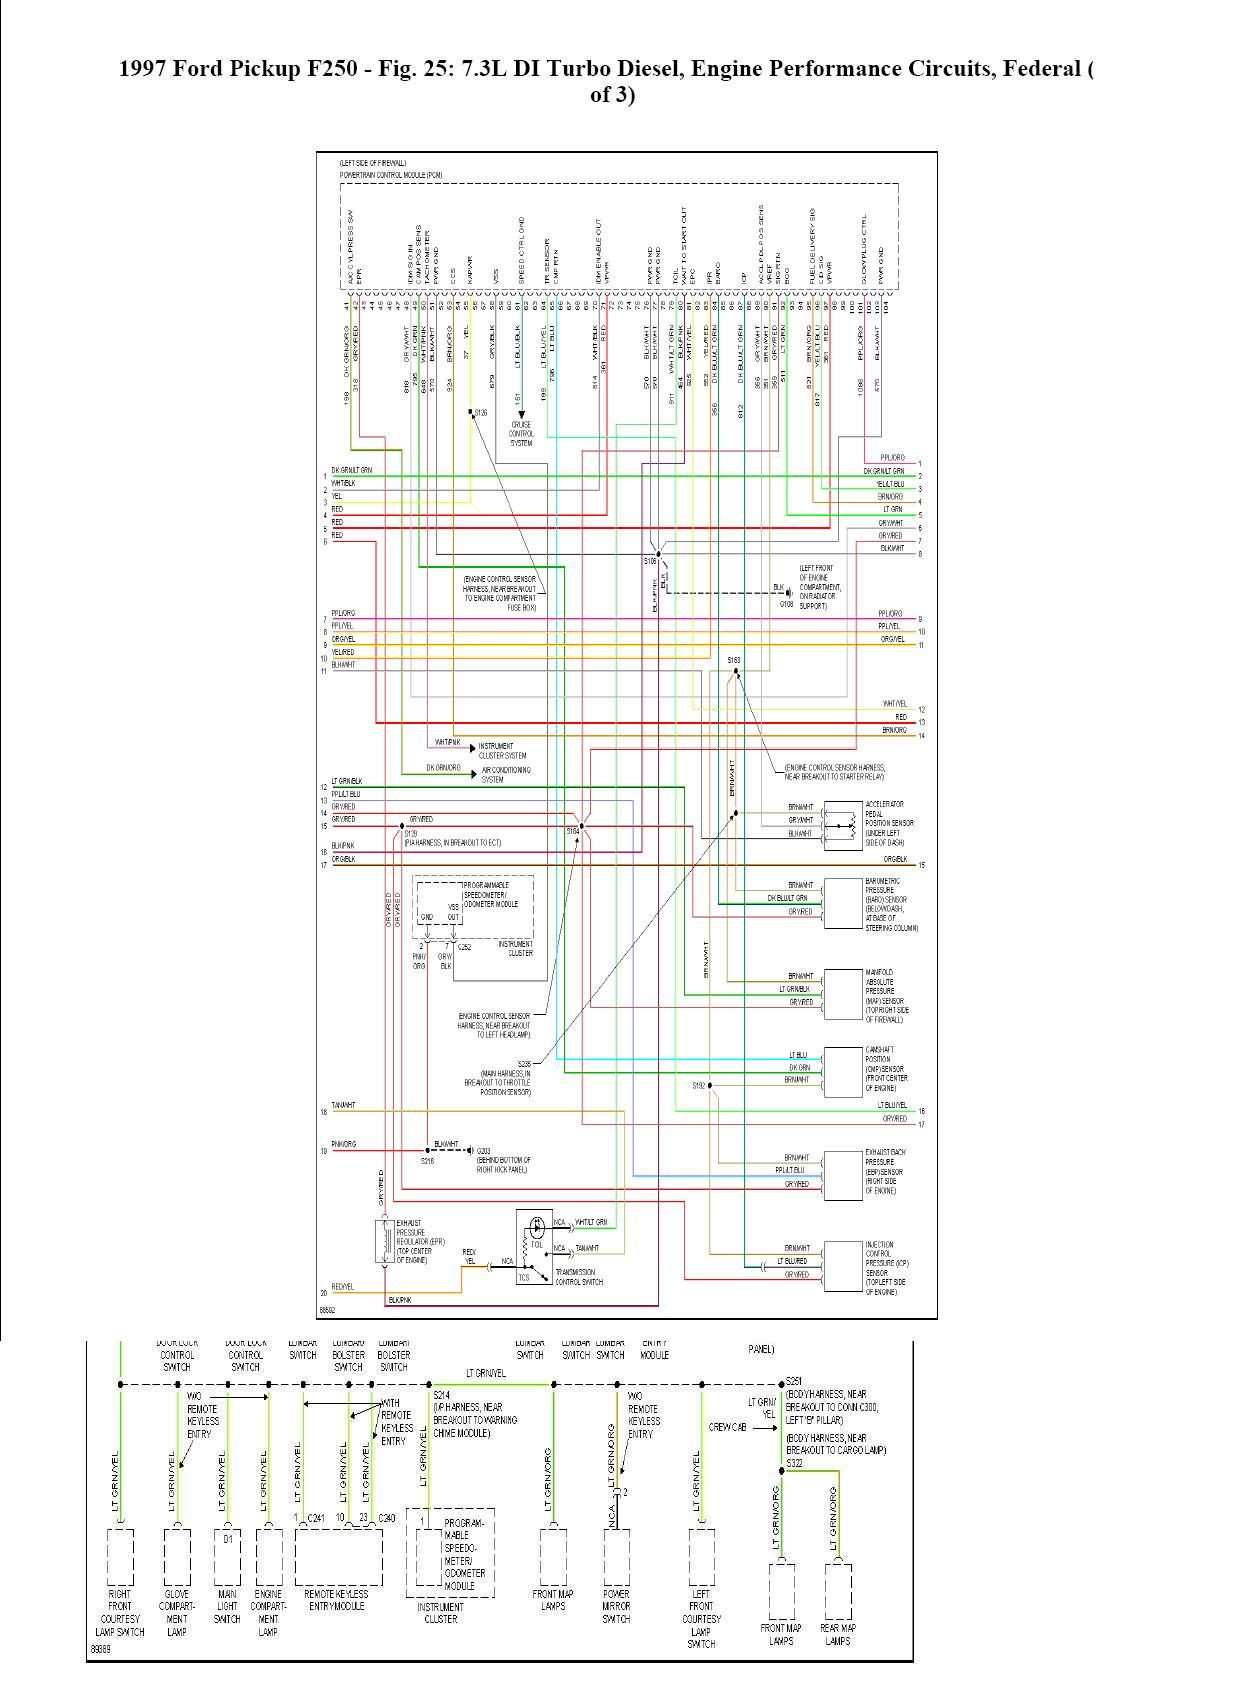 Wiring Diagram For 1997 Ford Explorer | Wiring Diagram on 97 chrysler cirrus engine diagram, ford 4.0 sohc engine diagram, 1997 ford 5.8 engine diagram, 97 dodge ram 1500 engine diagram, 1997 ford explorer brake diagram, 2007 sport trac transmission line diagram, 97 jeep grand cherokee engine diagram, 97 buick park avenue engine diagram, 97 pontiac grand am engine diagram, 2008 ford expedition heater hose diagram, 1997 ford 4.0 engine diagram, 97 ford explorer lose power, 97 ford explorer radio wiring, 97 ford wiring diagram, 2005 ford explorer belt diagram, ford explorer motor diagram, 1996 ford 3.8 engine diagram, 97 ford explorer speedometer, ford 7.3 powerstroke diesel engine diagram, 97 geo prizm engine diagram,